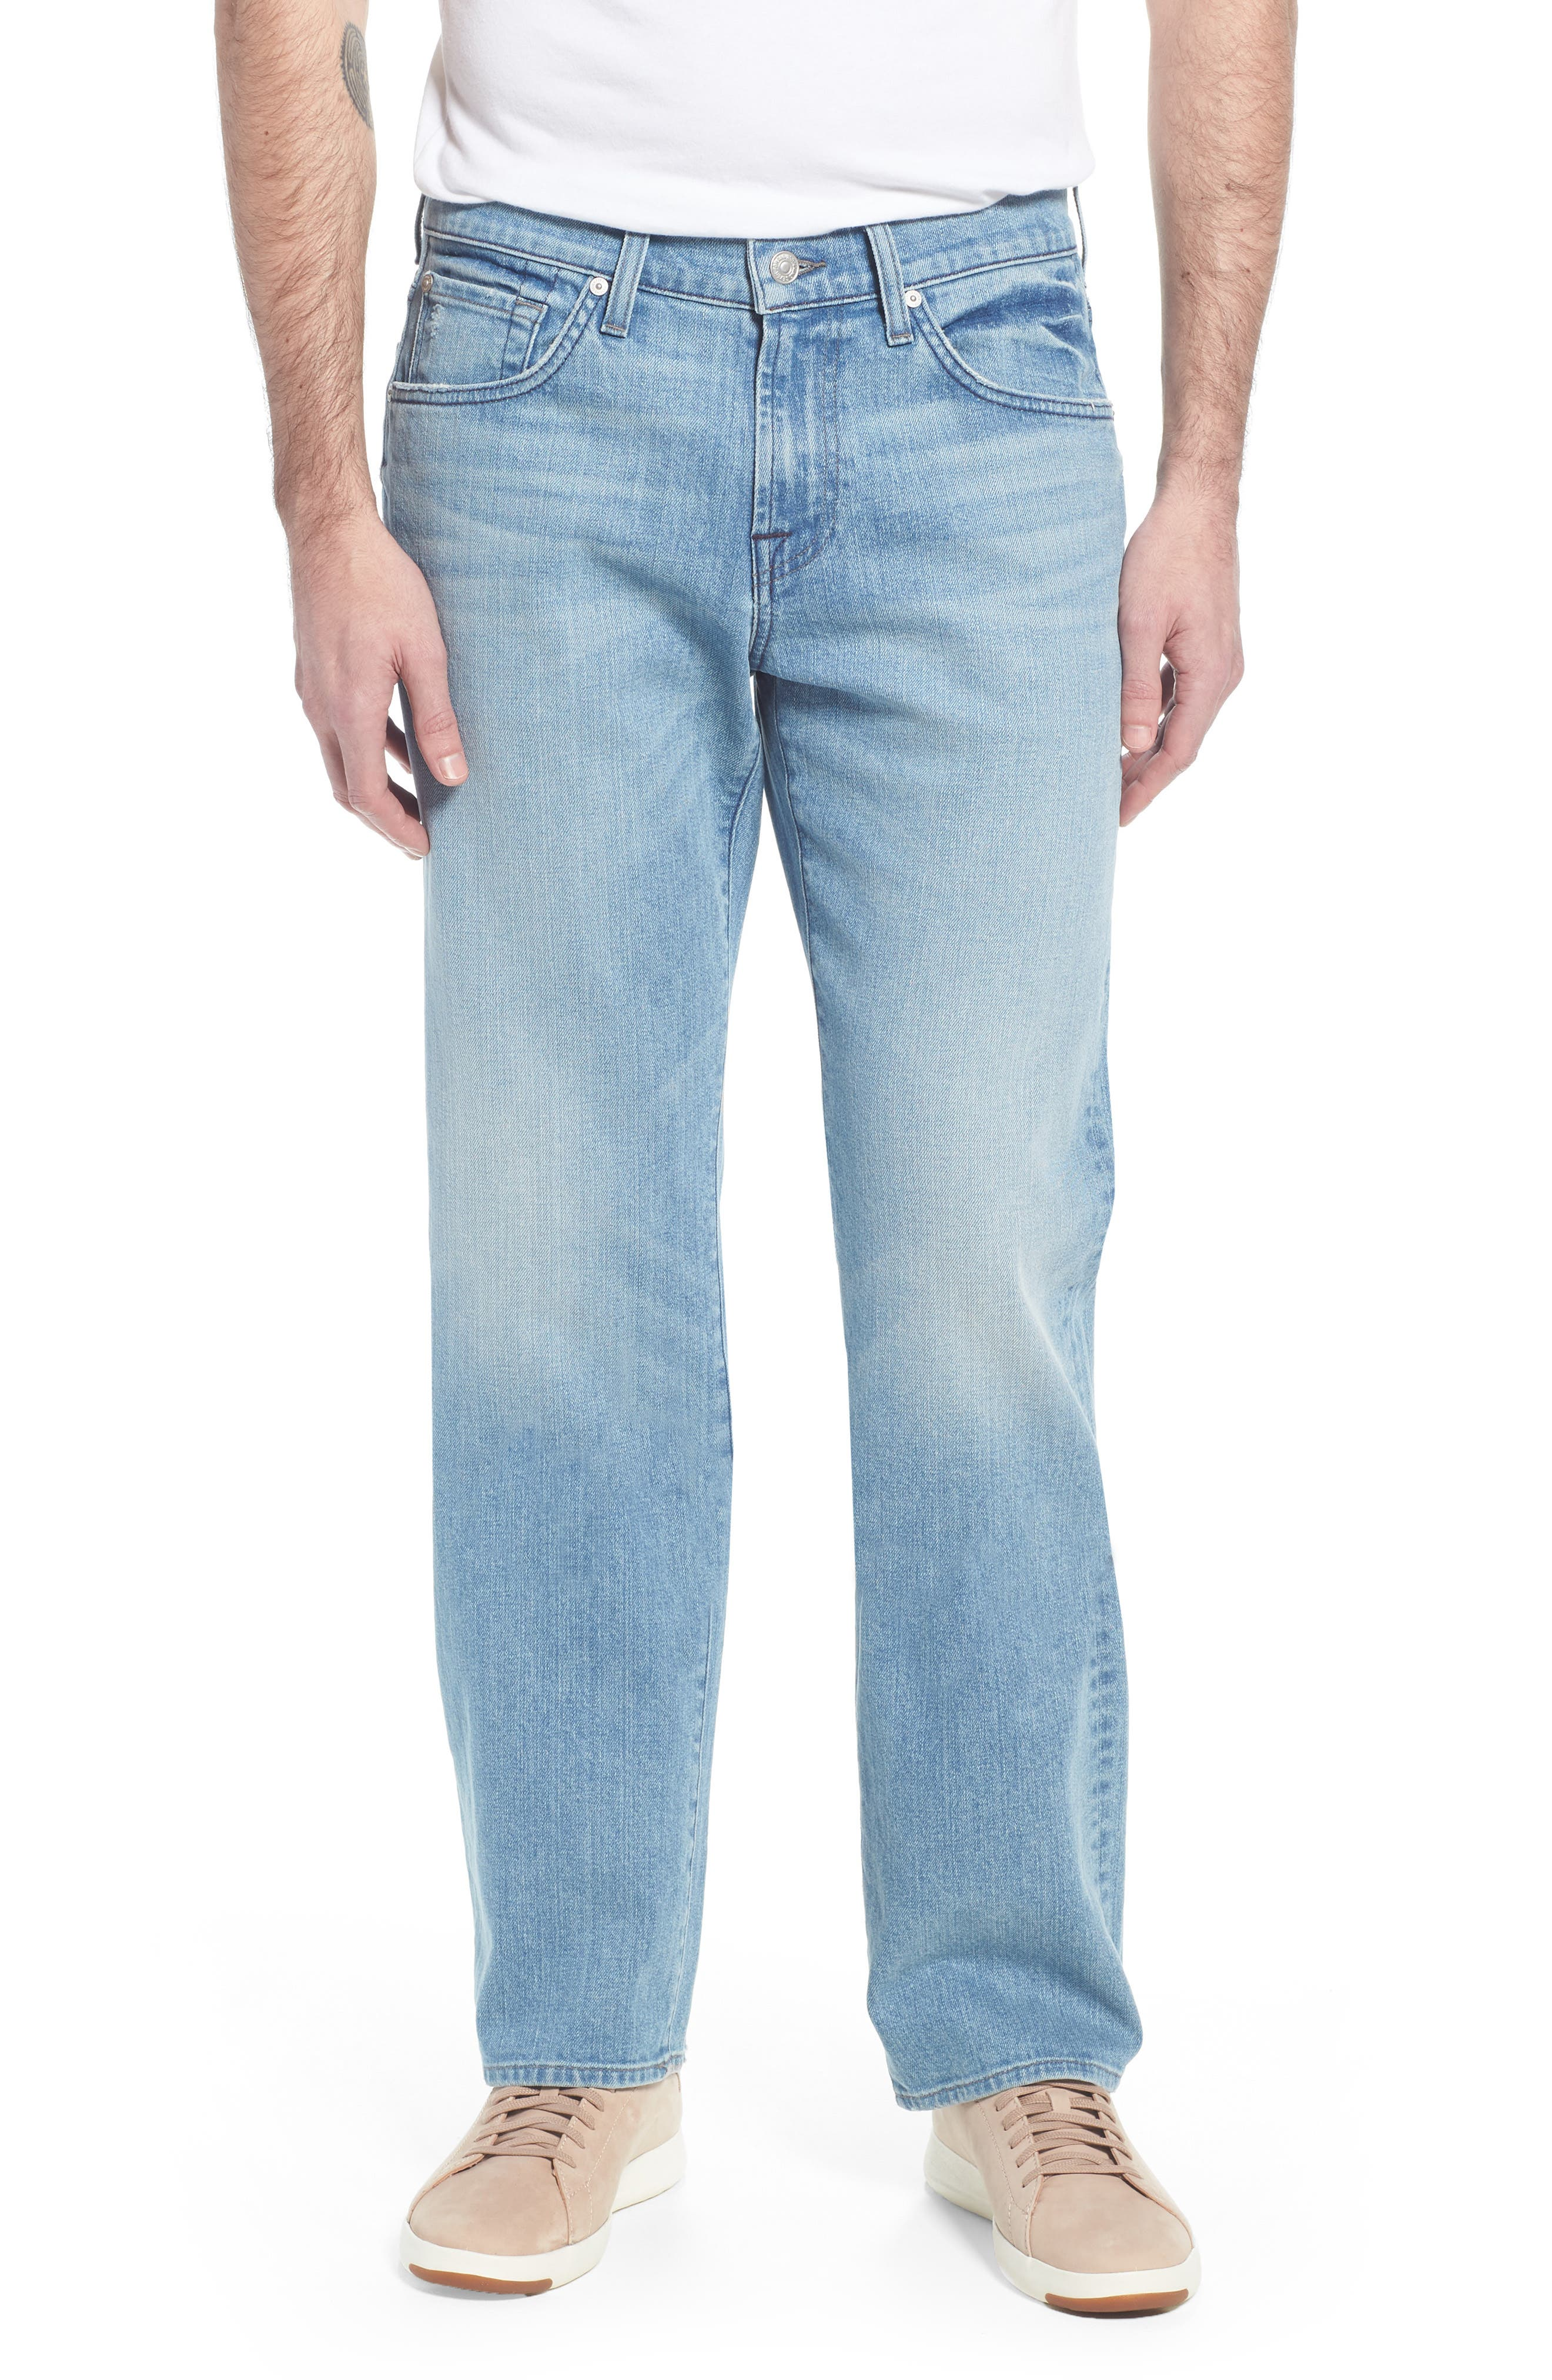 Austyn Relaxed Fit Jeans,                         Main,                         color, 401